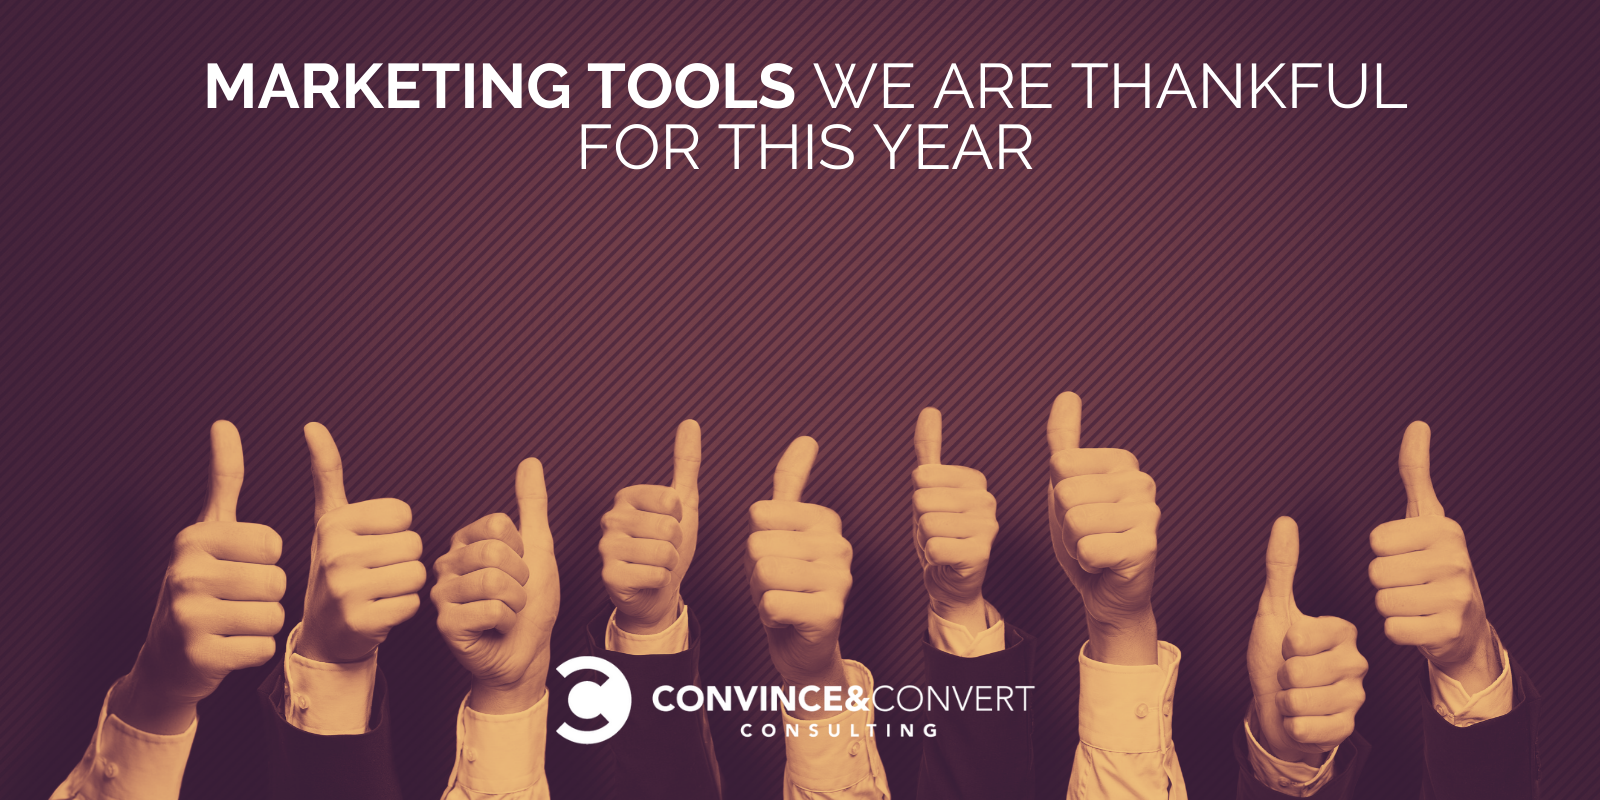 12 Marketing Tools We Are Thankful for This Year